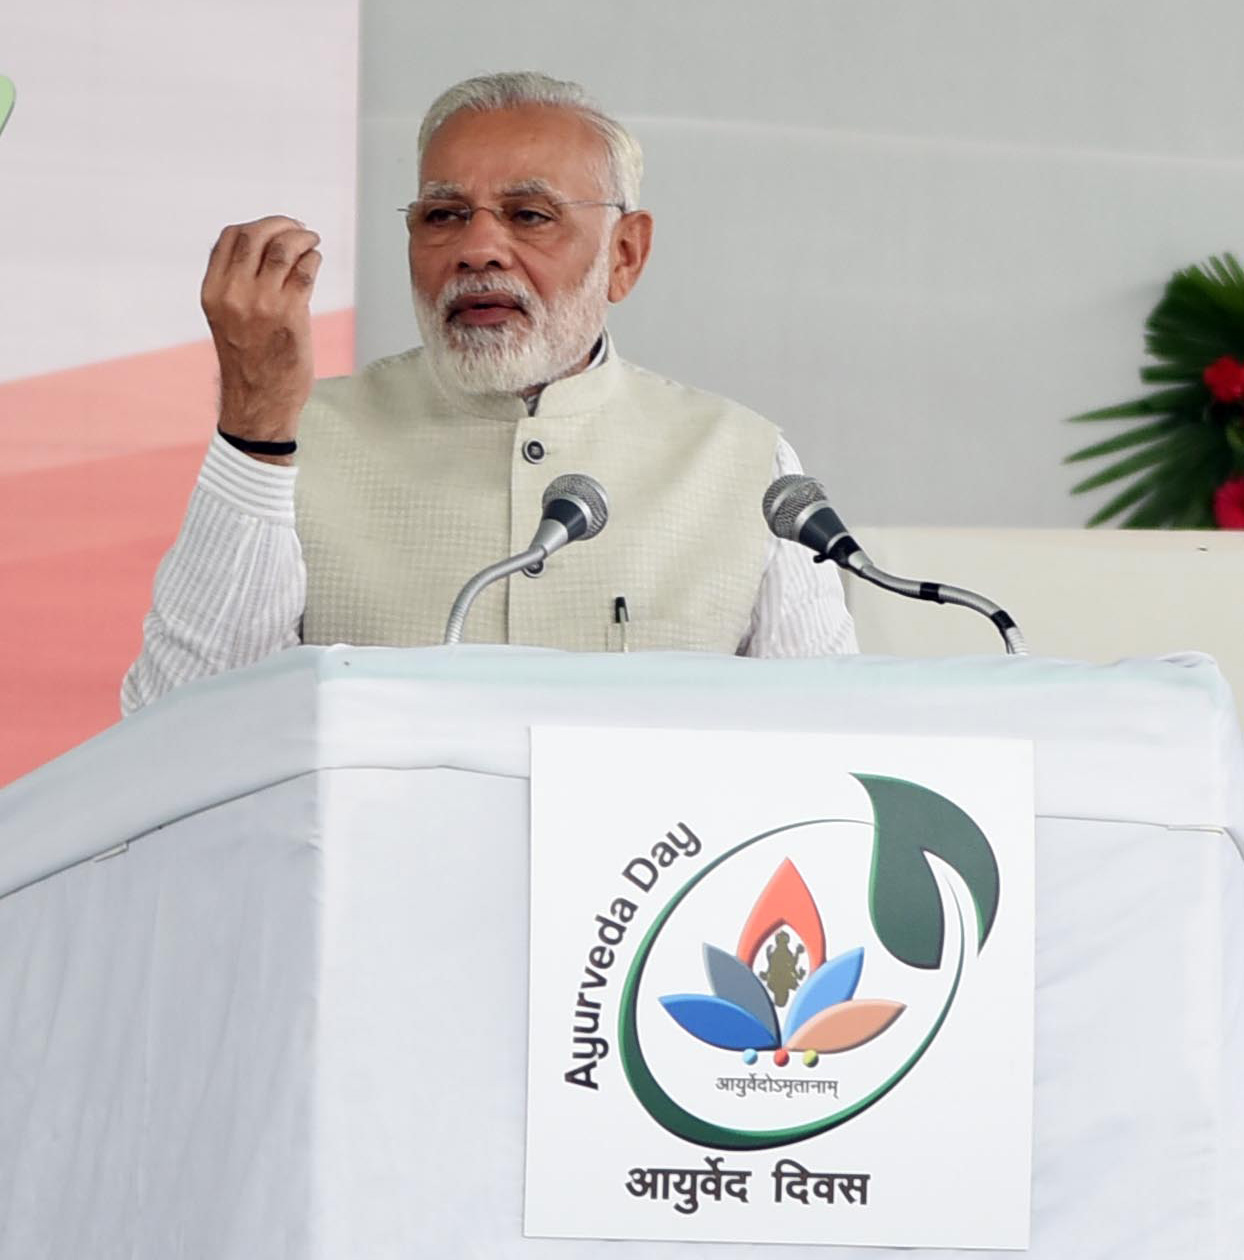 The Prime Minister, Shri Narendra Modi addressing at an event to dedicate first ever All India Institute of Ayurveda to the nation on the occasion of 2nd Ayurveda Day, in New Delhi on October 17, 2017.